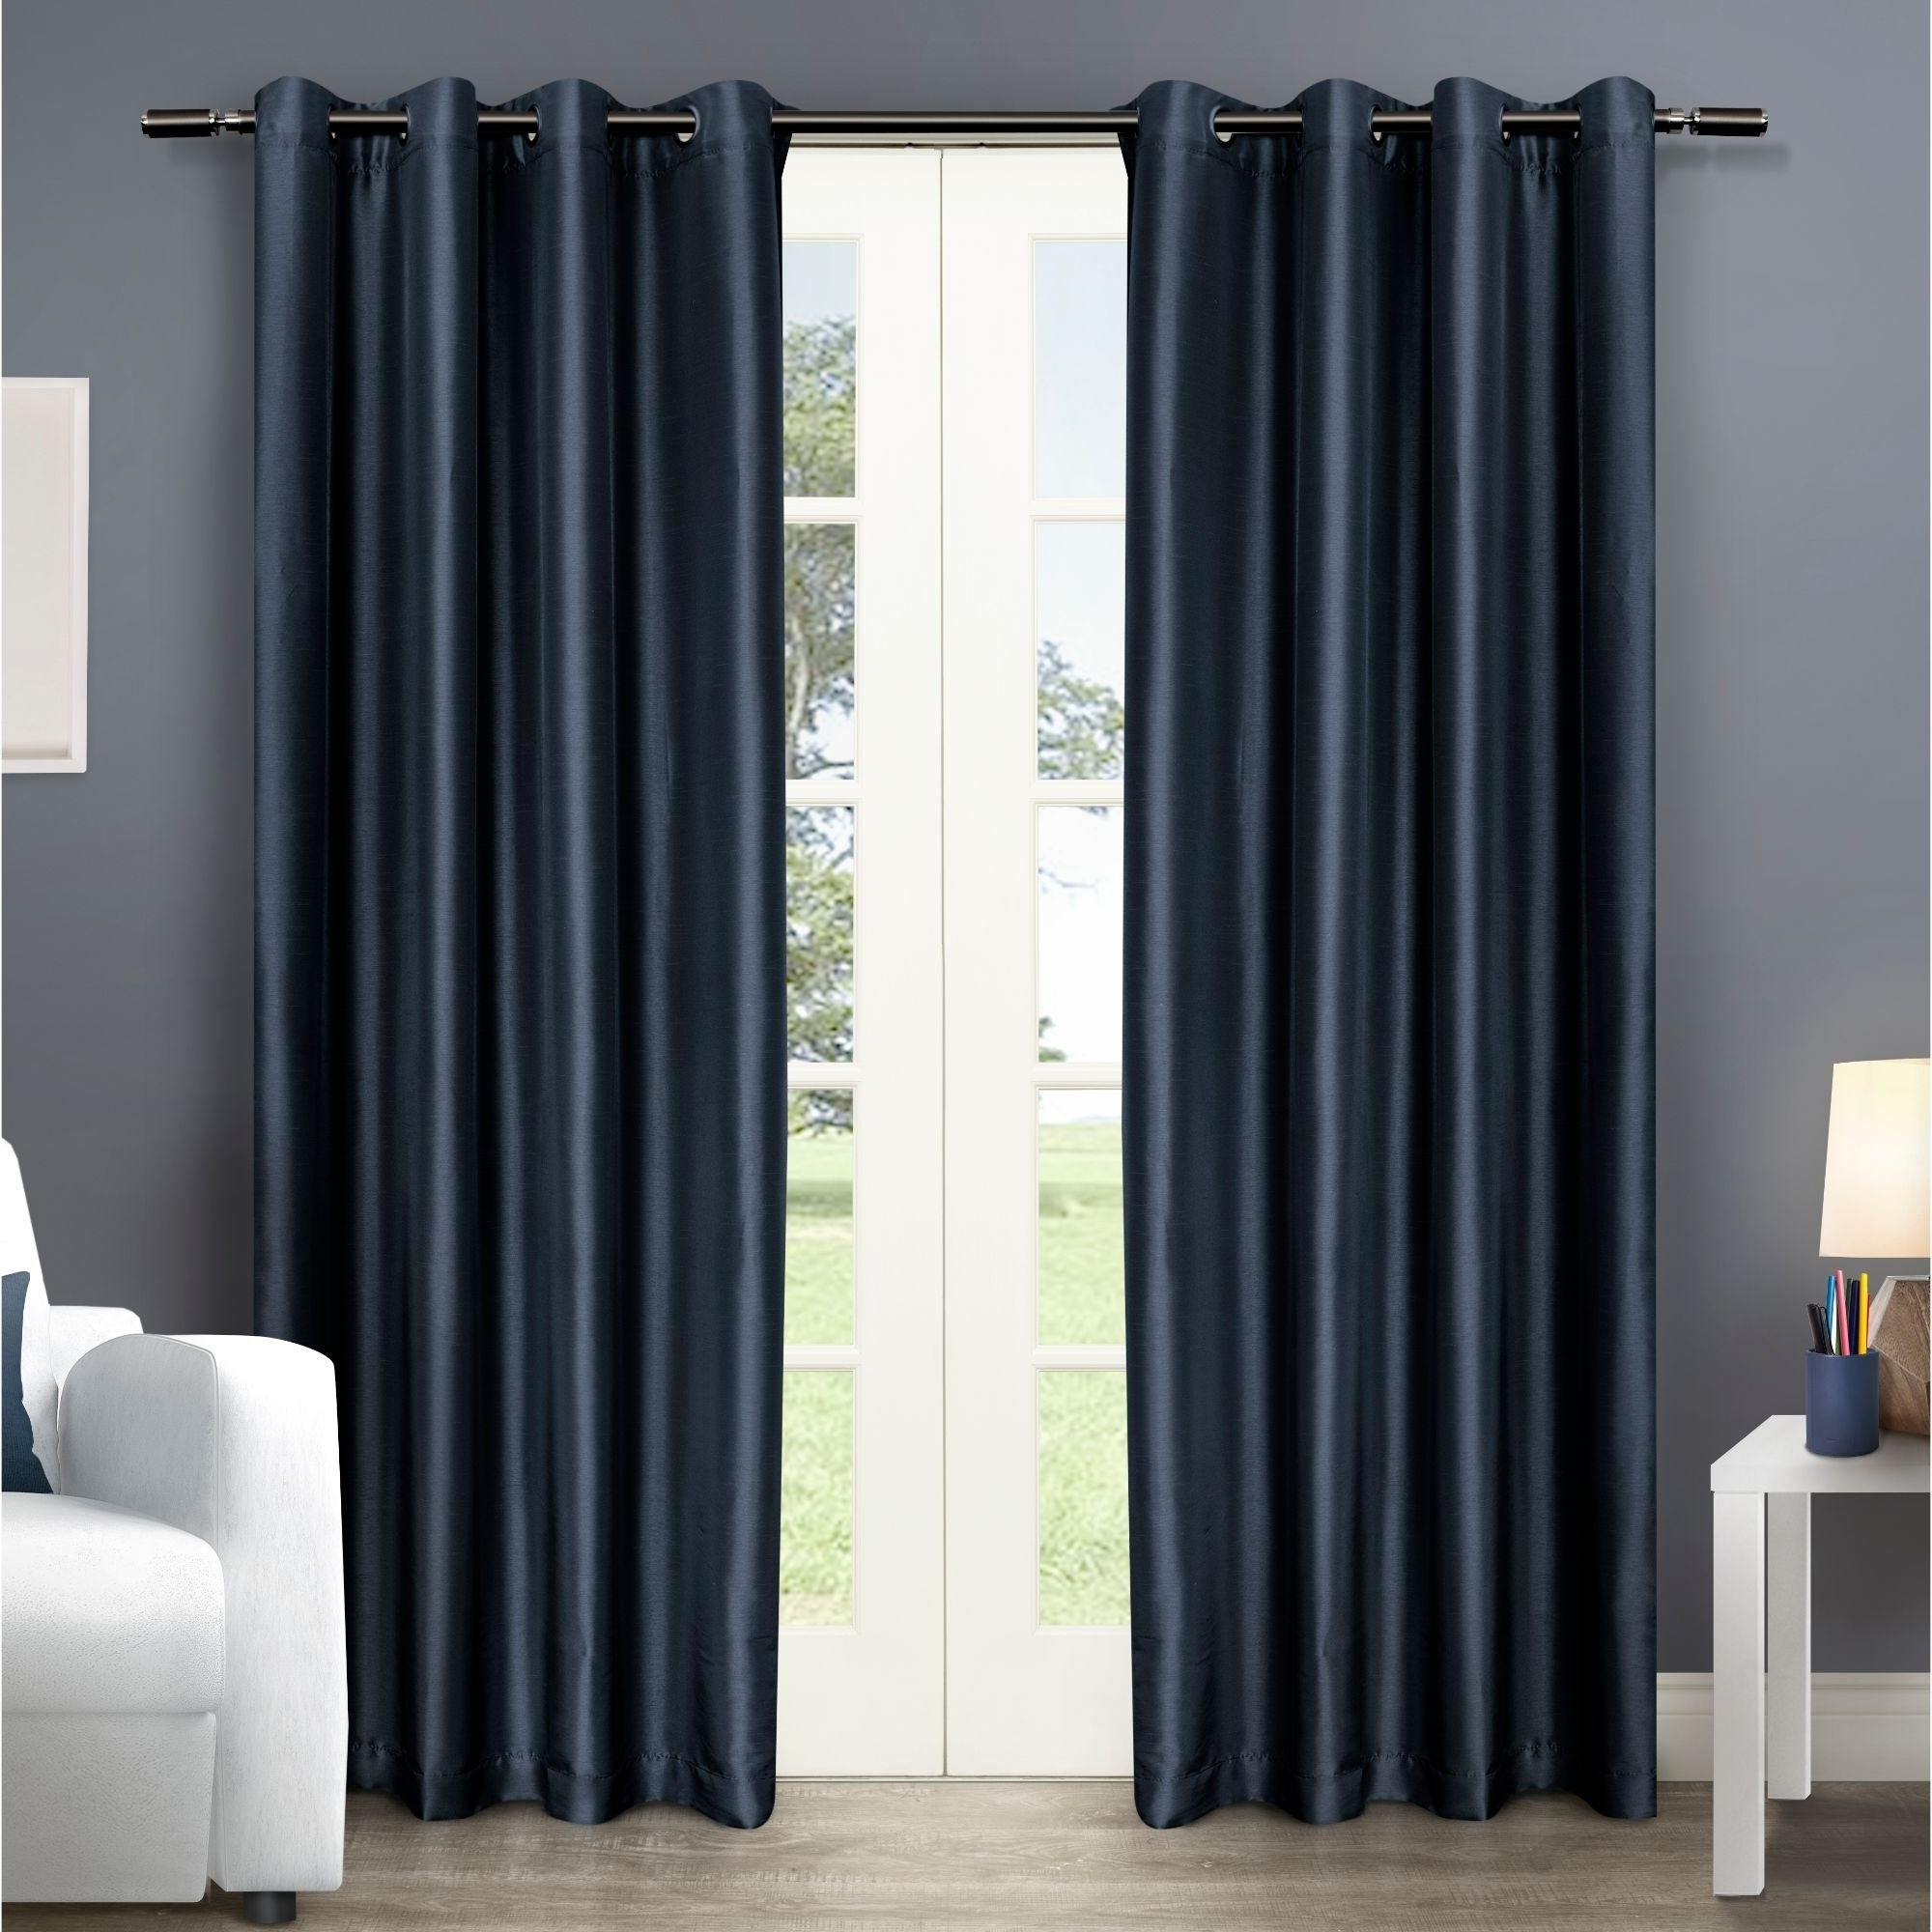 Copper Grove Fulgence Faux Silk Grommet Top Panel Curtains For Fashionable Copper Grove Fulgence Faux Silk Grommet Top Panel Curtains – N/ A (View 2 of 20)